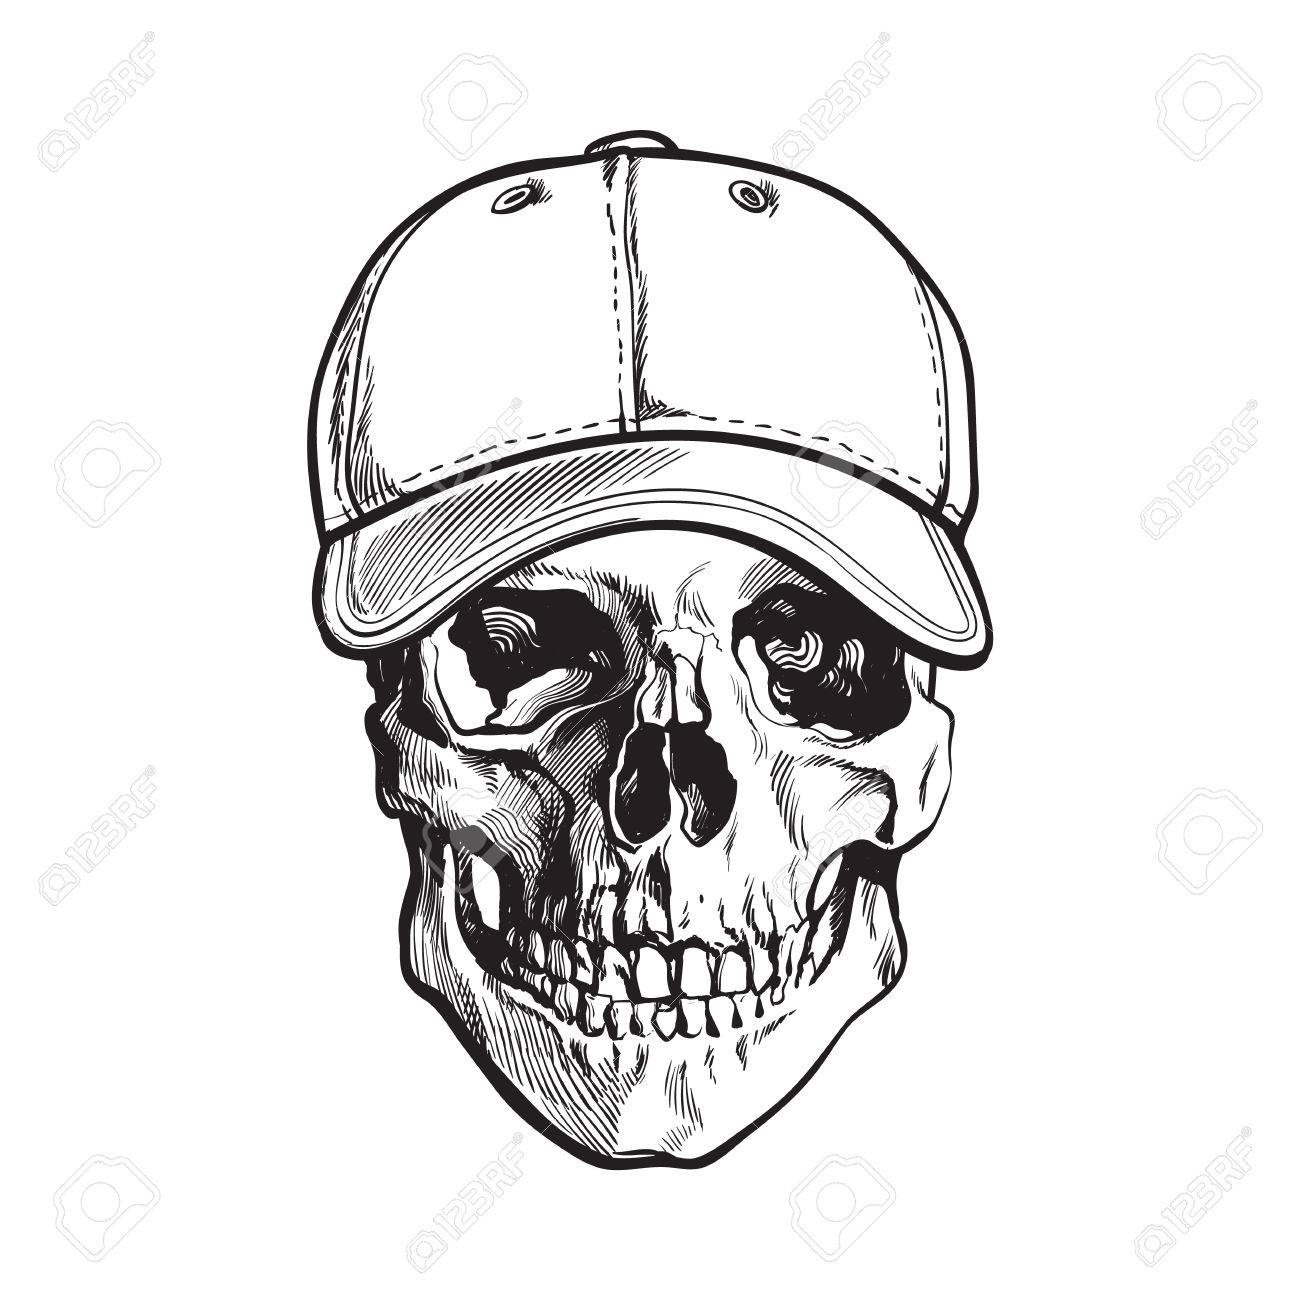 hand drawn human skull wearing black and white unlabelled baseball cap sketch vector illustration isolated